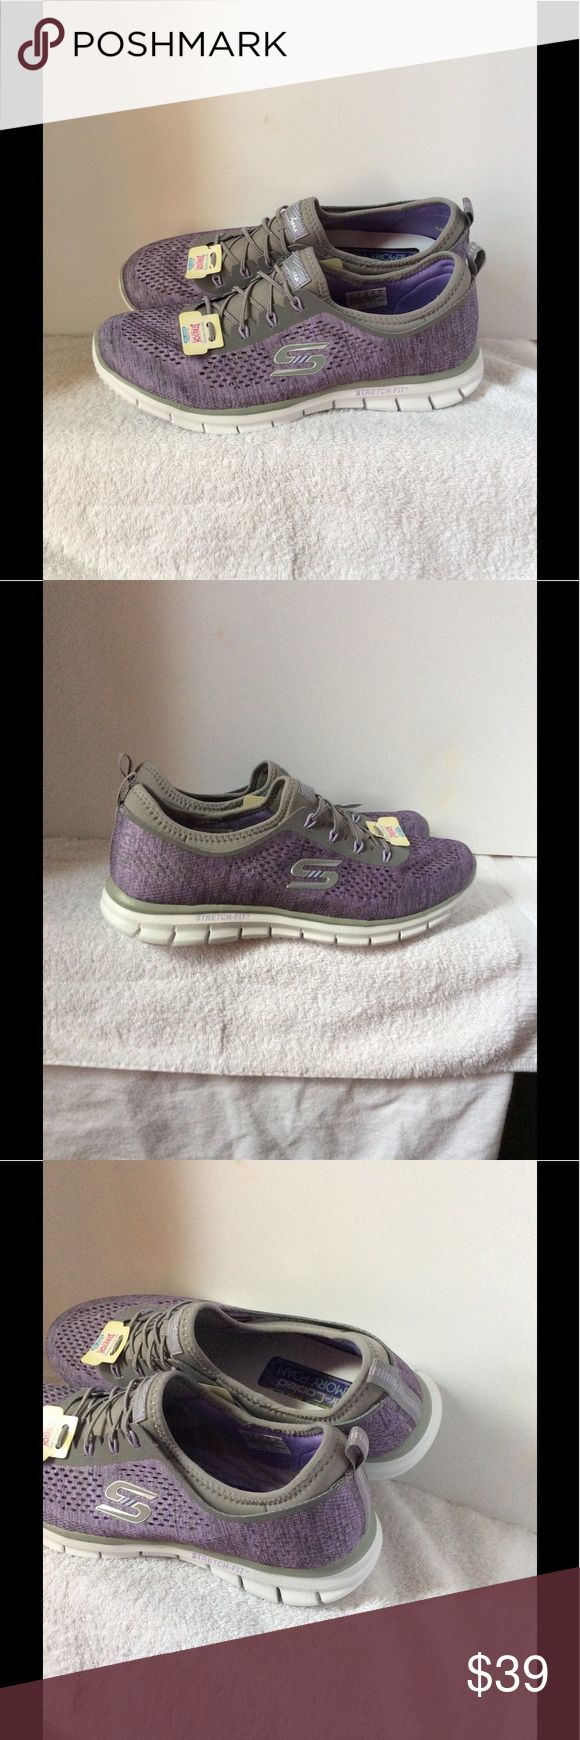 Women's Skecher's size 10 US Women's Skecher's size 10 US. Brand new original sneakers comes with box. Skechers Shoes Sneakers